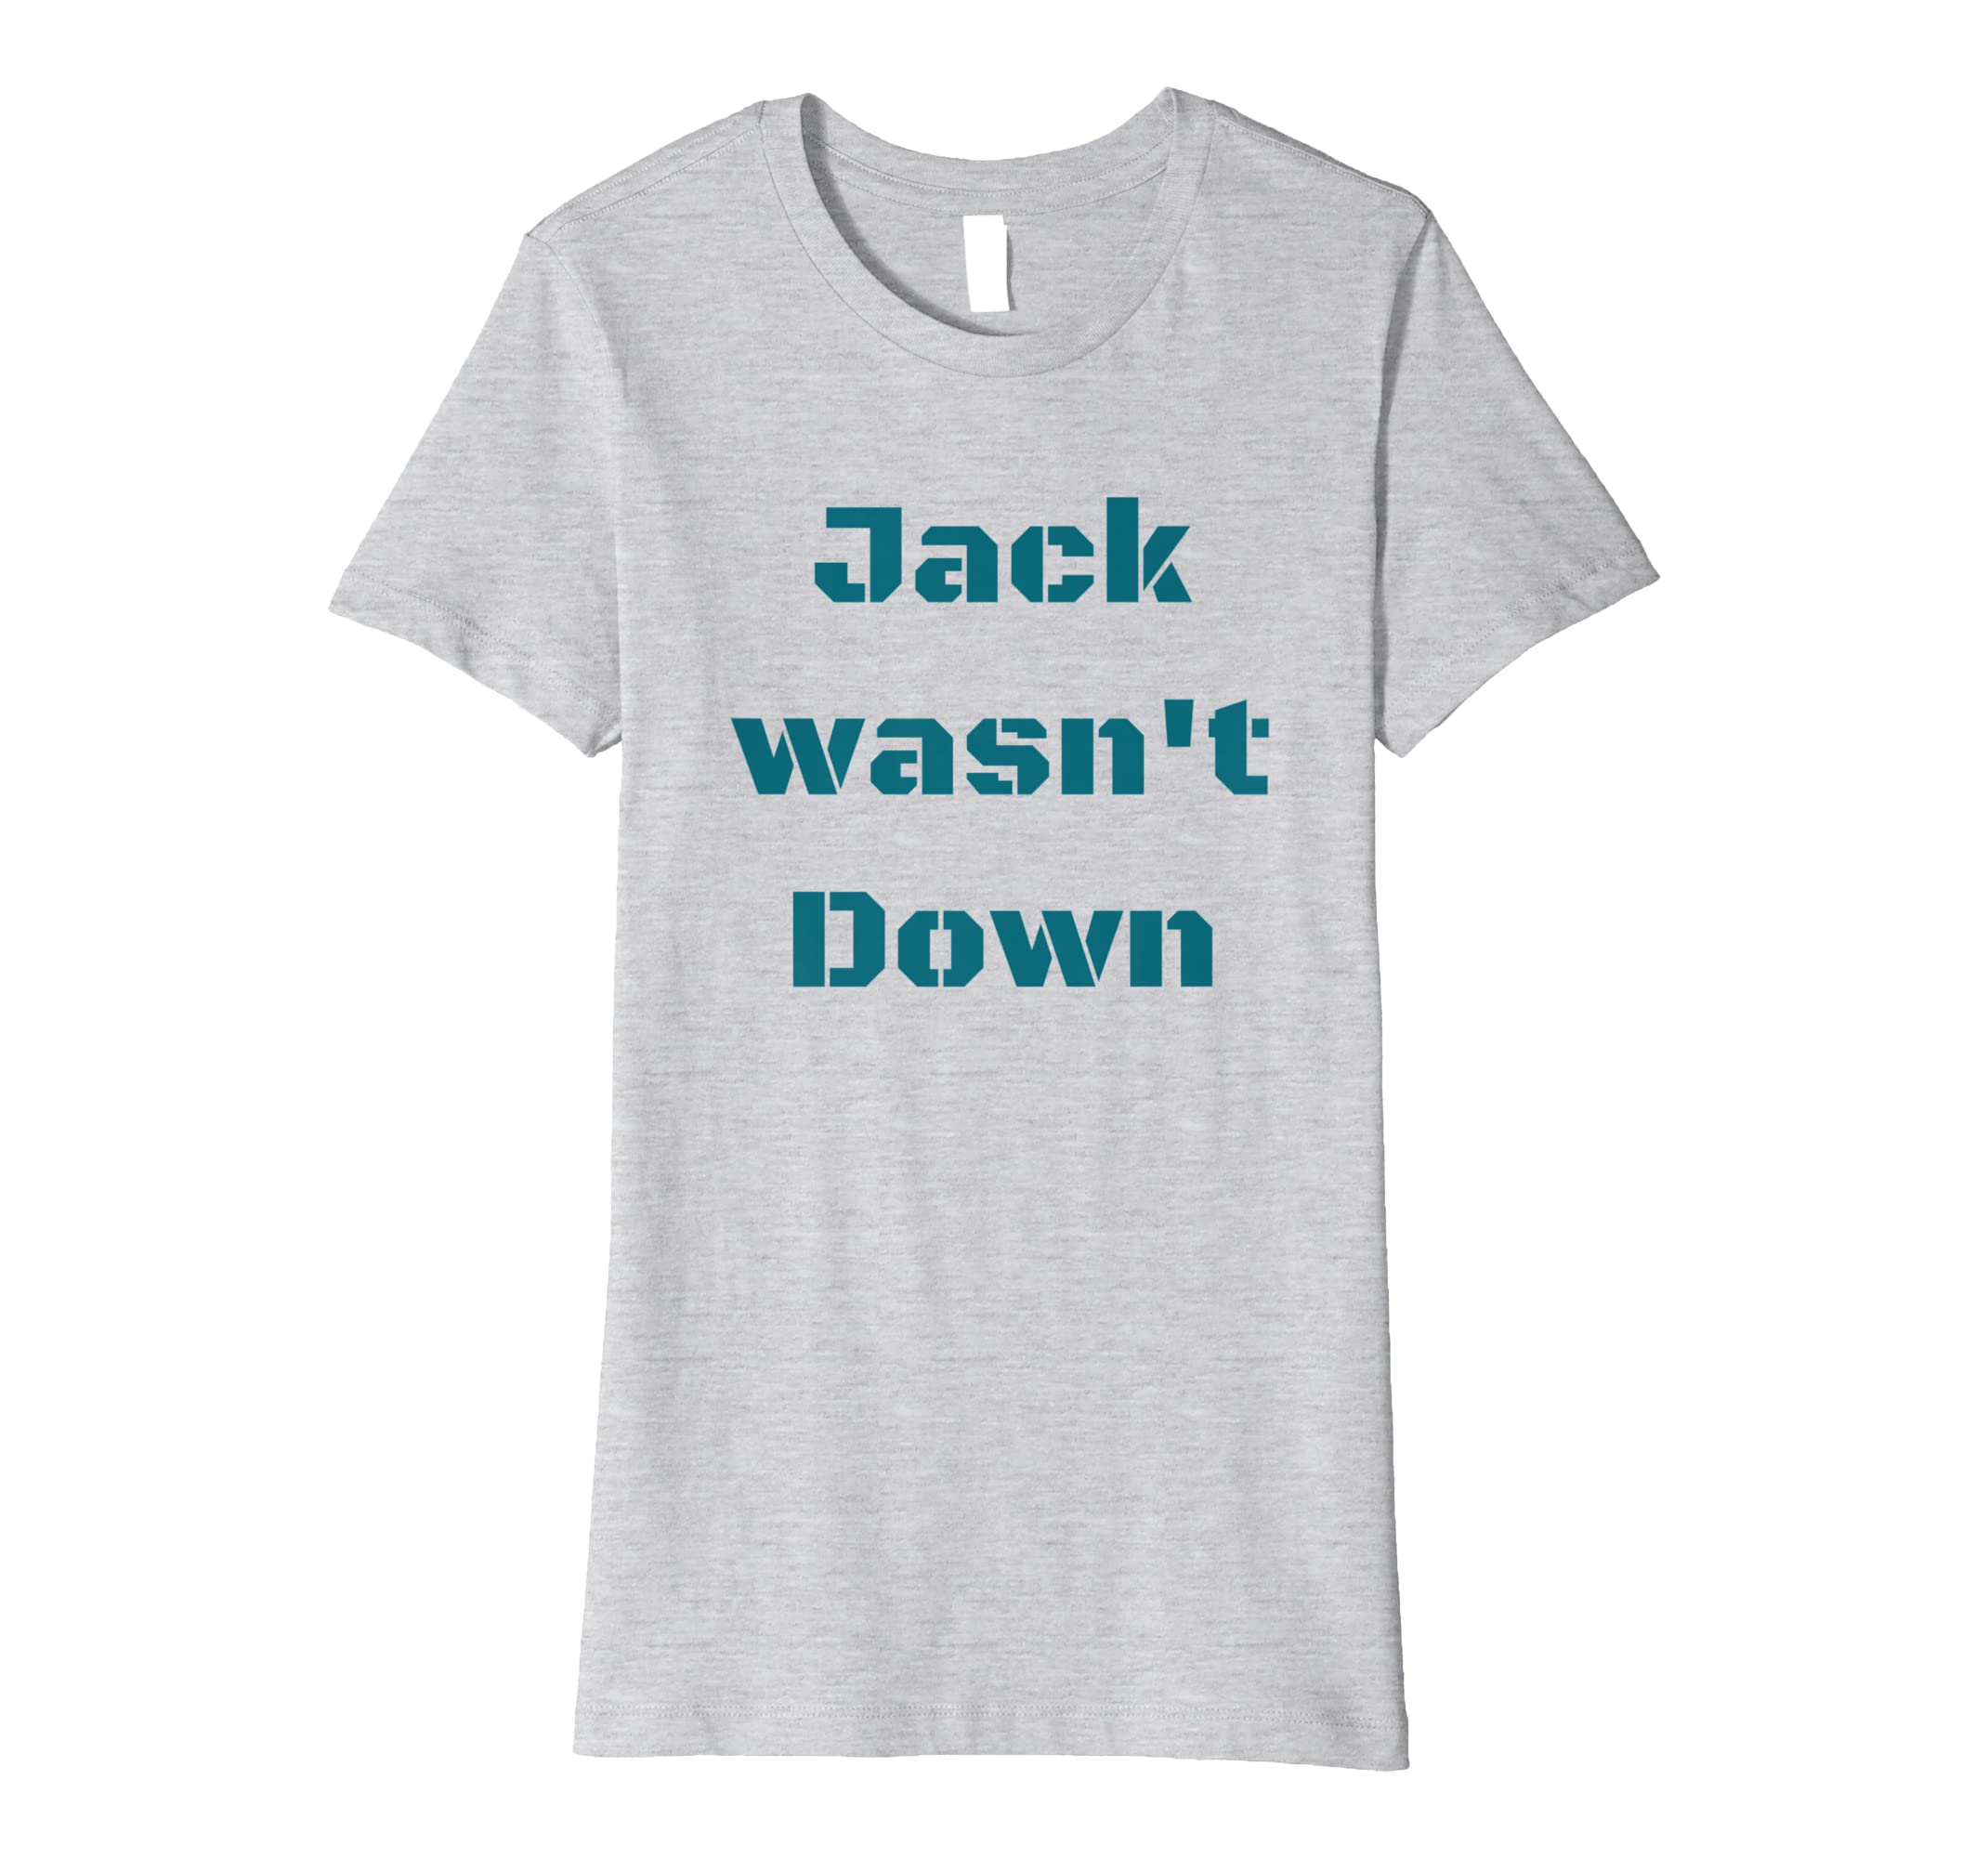 f744aa095 Amazon.com  Jacksonville T-shirt - Myles Jack Wasn t Down Shirt  Clothing